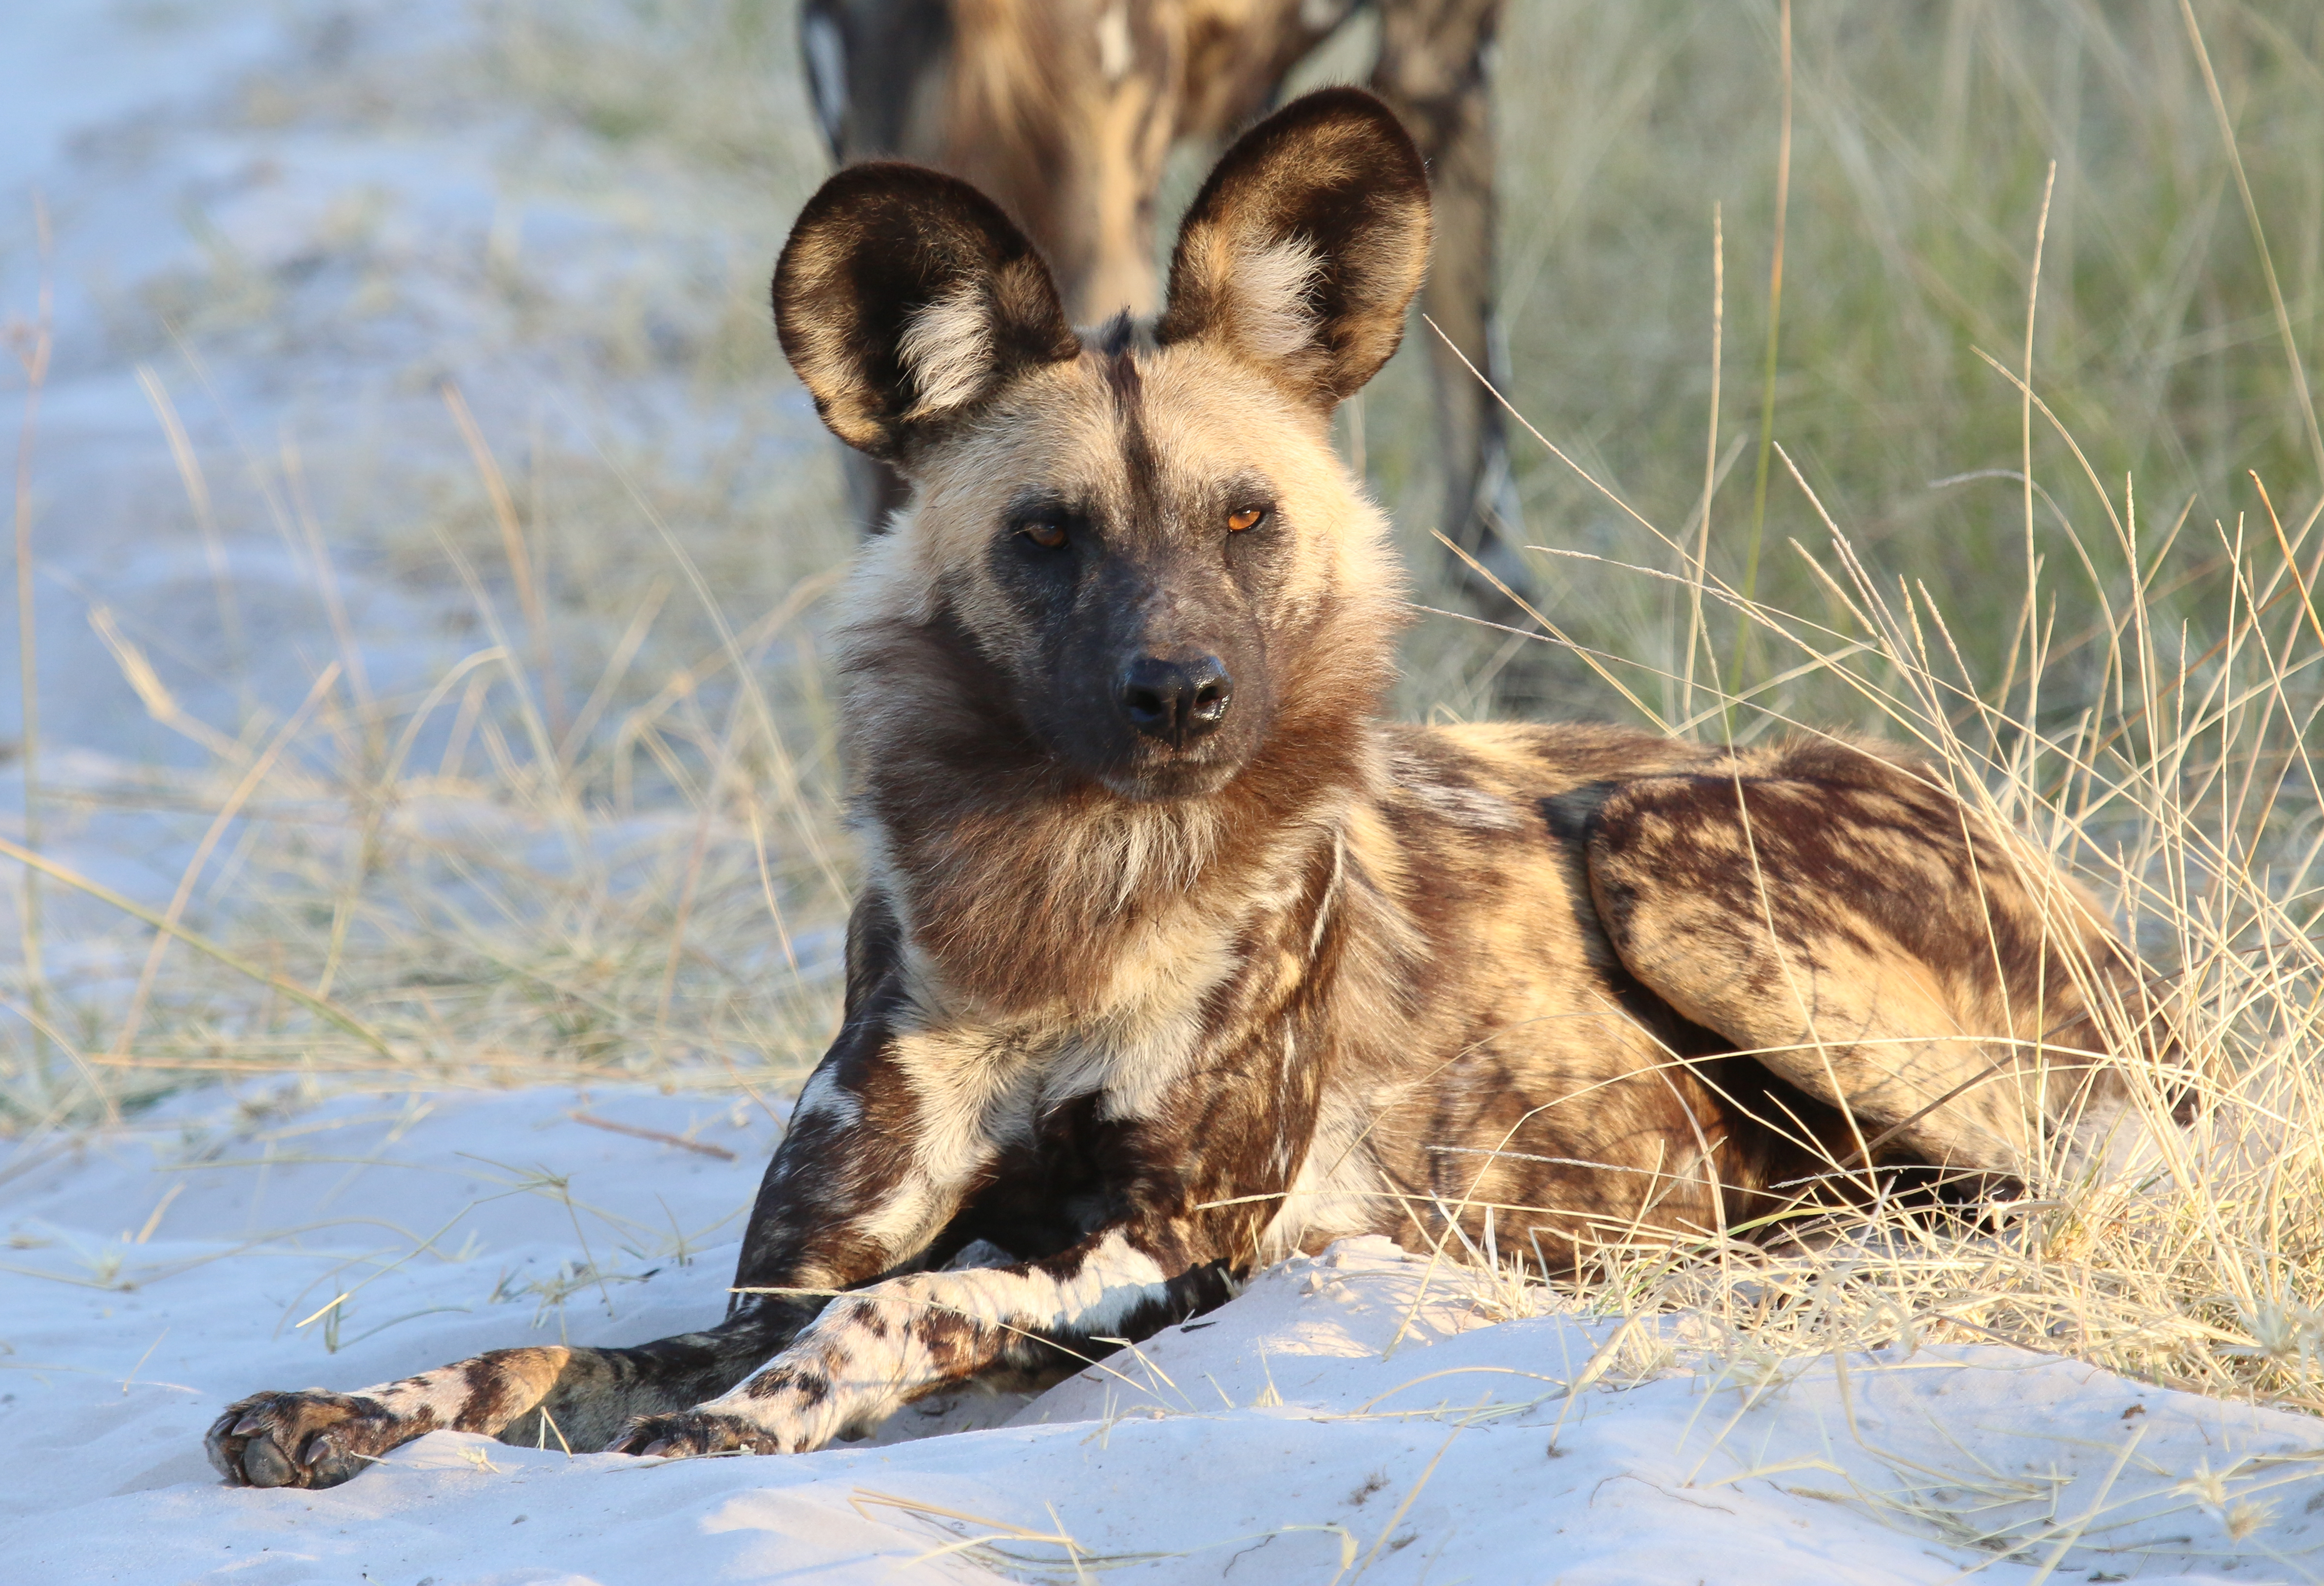 139528 download wallpaper Animals, Hyena, Predator, Animal screensavers and pictures for free